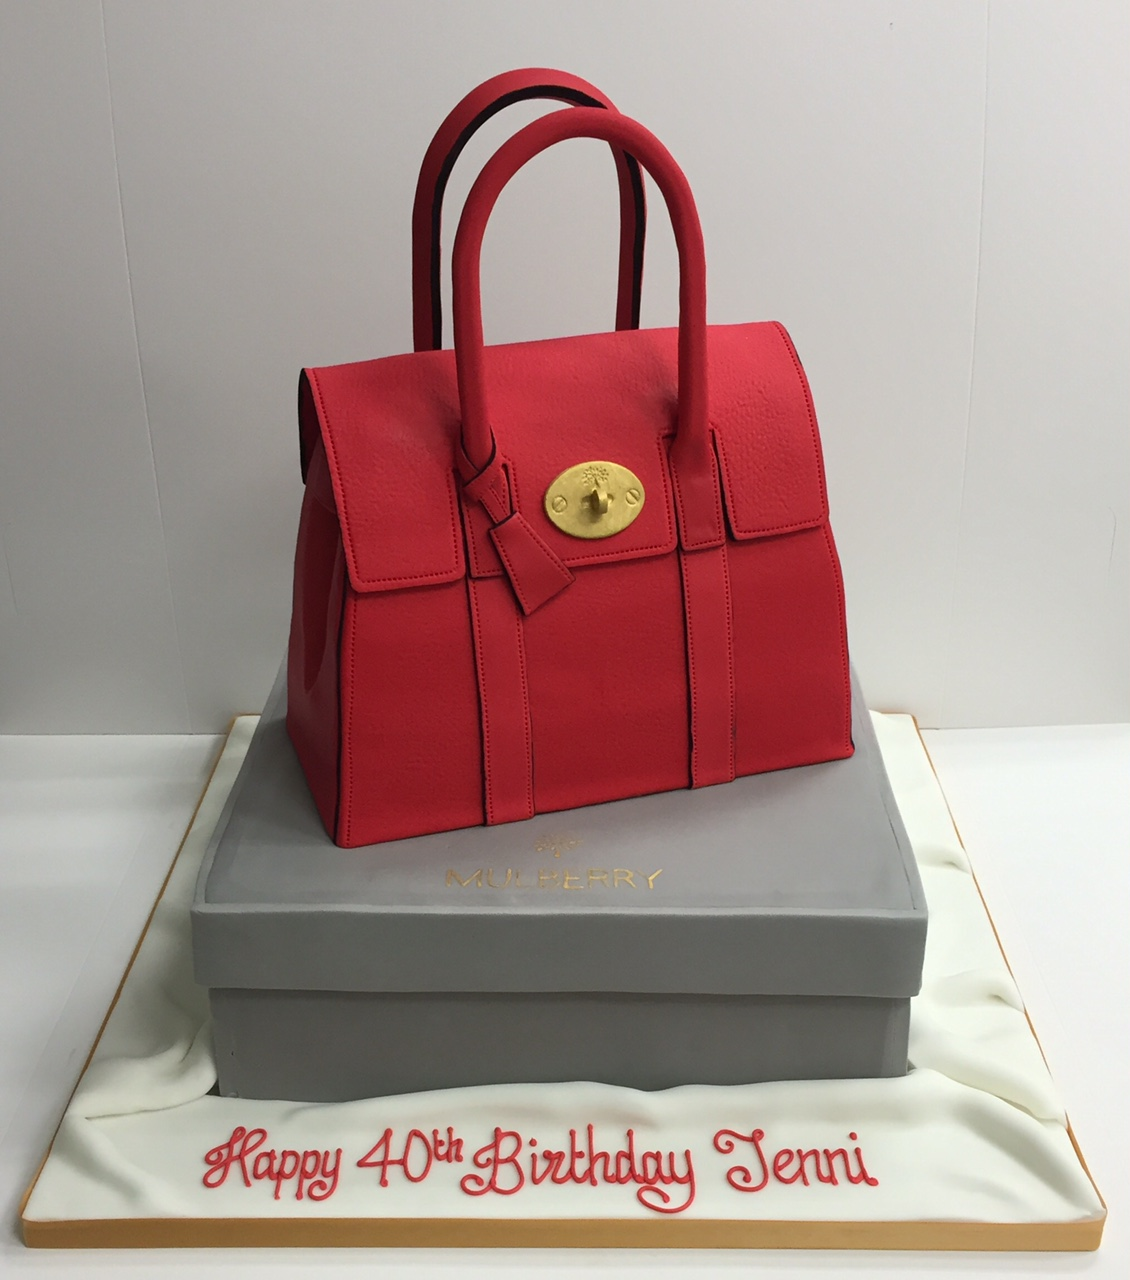 Handbag And Shoe Birthday Cakes Cakes By Robin